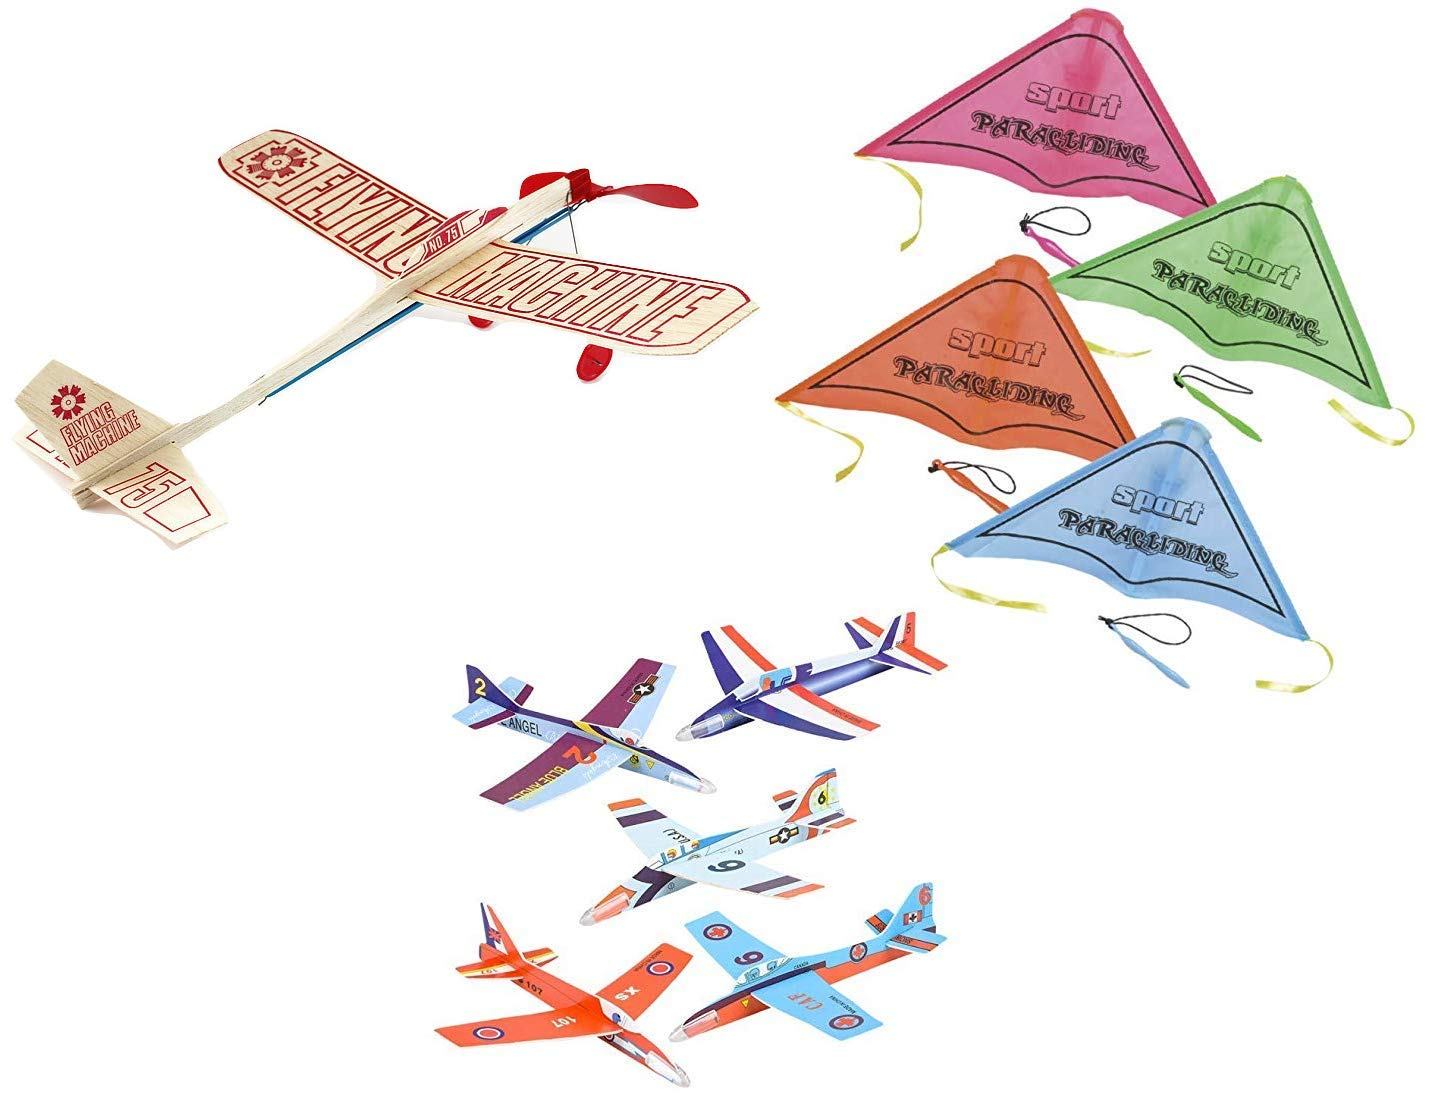 Outdoor Flying Toy Set - Guillow Flying Machine Balsa Wood Plane, 4 Sport Kite Gliders, and 6 Foam Fighter Gliders - A Total of 11 Fun Outdoor Flying Toys